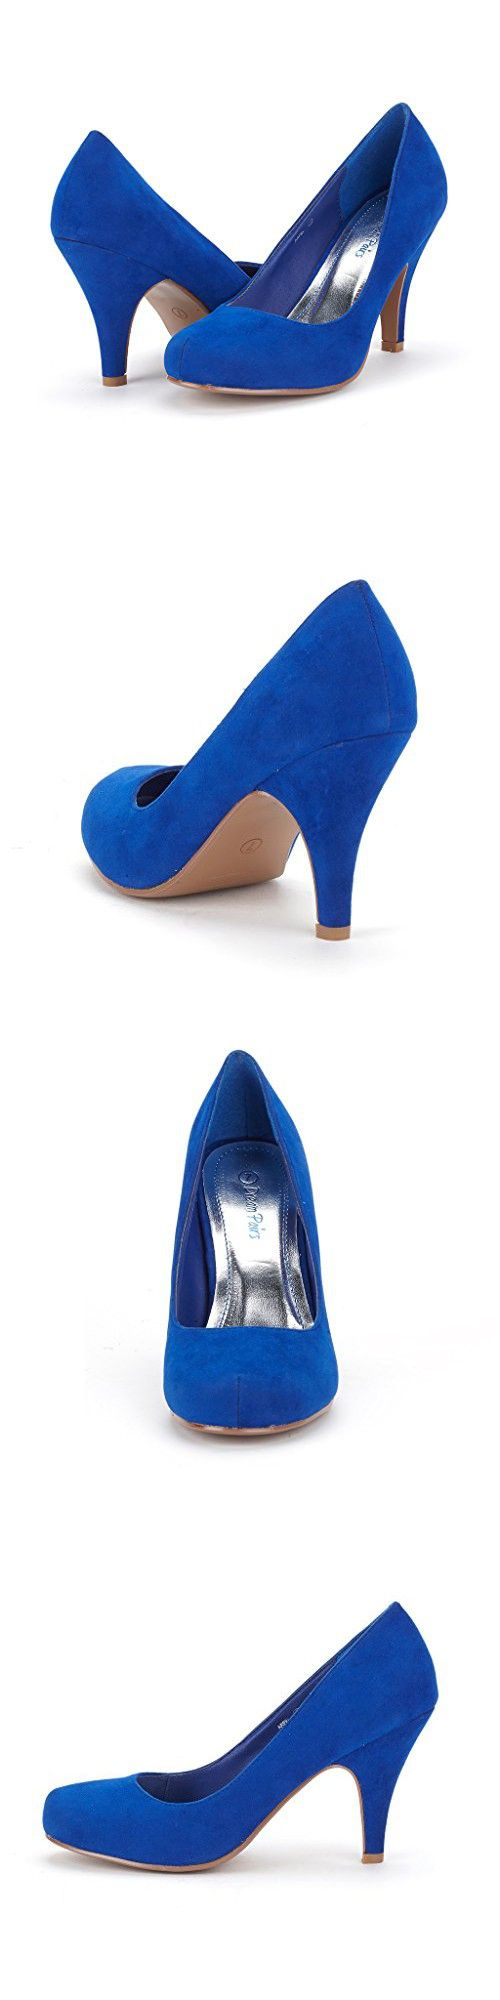 DREAM PAIRS ARPEL Women's Formal Evening Dance Classic Low Heel Pumps Shoes New Royal Blue Size 6